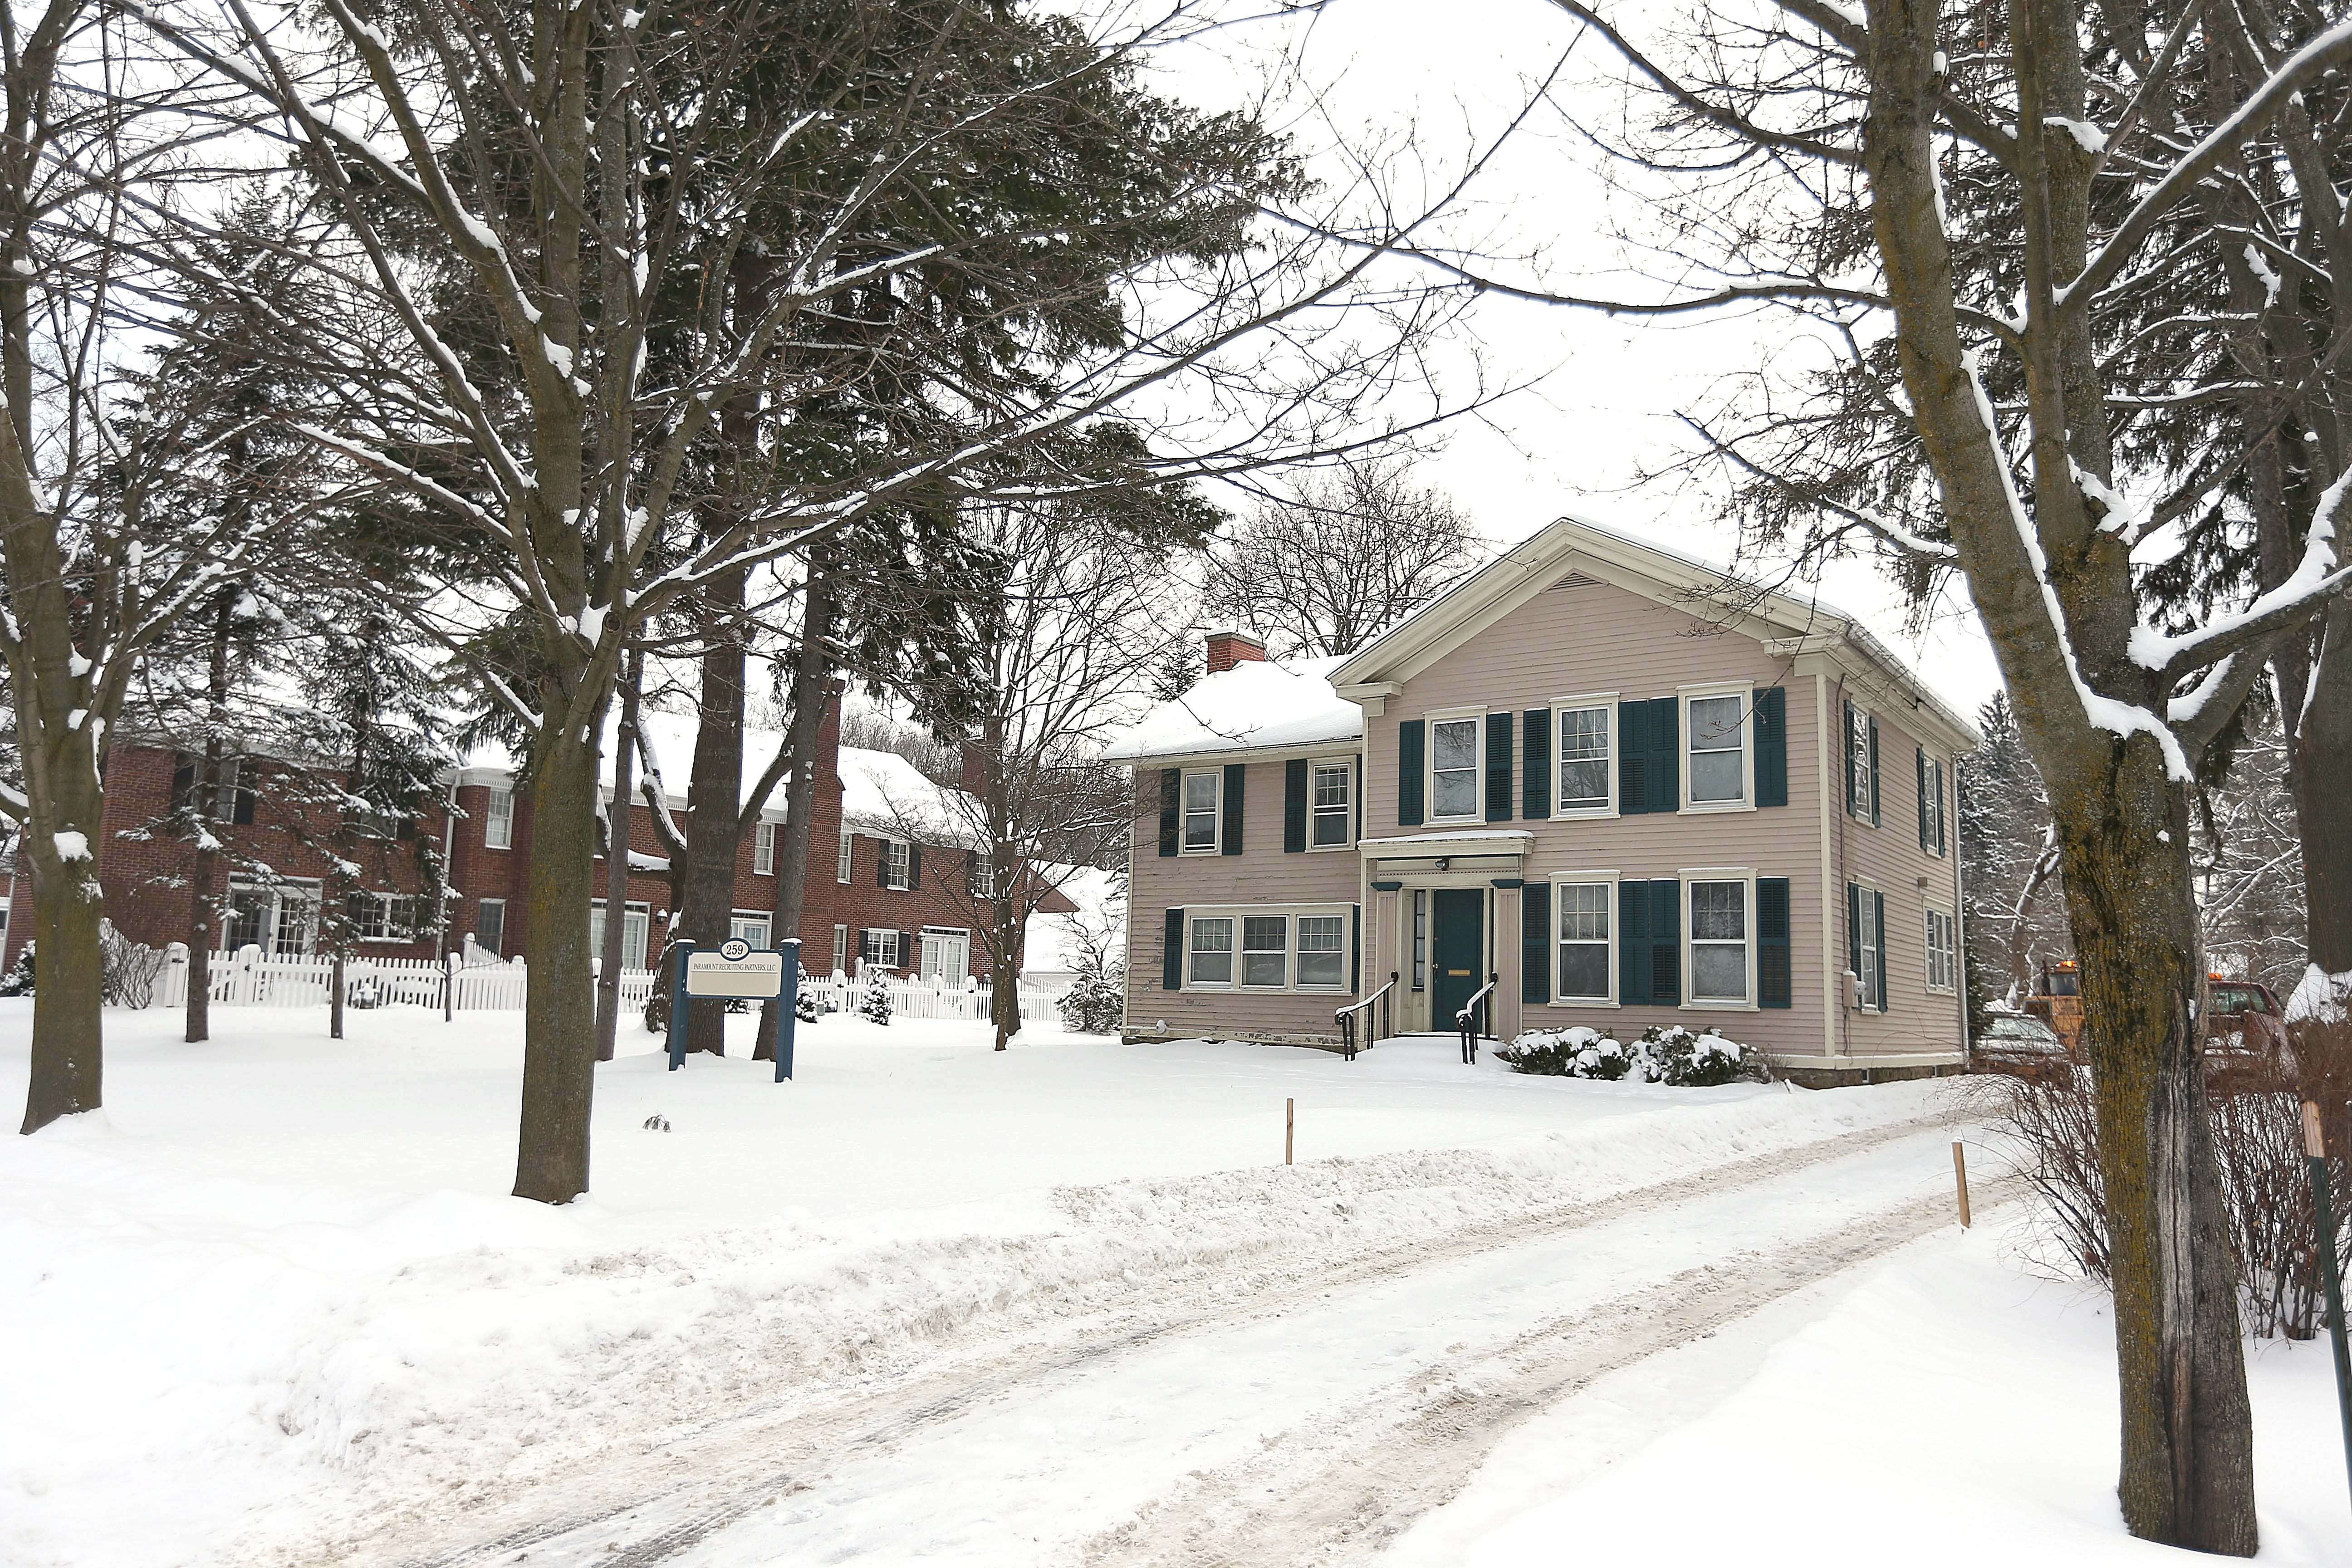 This historic home at 259 Main St., East Aurora, was built around 1840 and was the home of Irving Price of Fisher-Price fame.